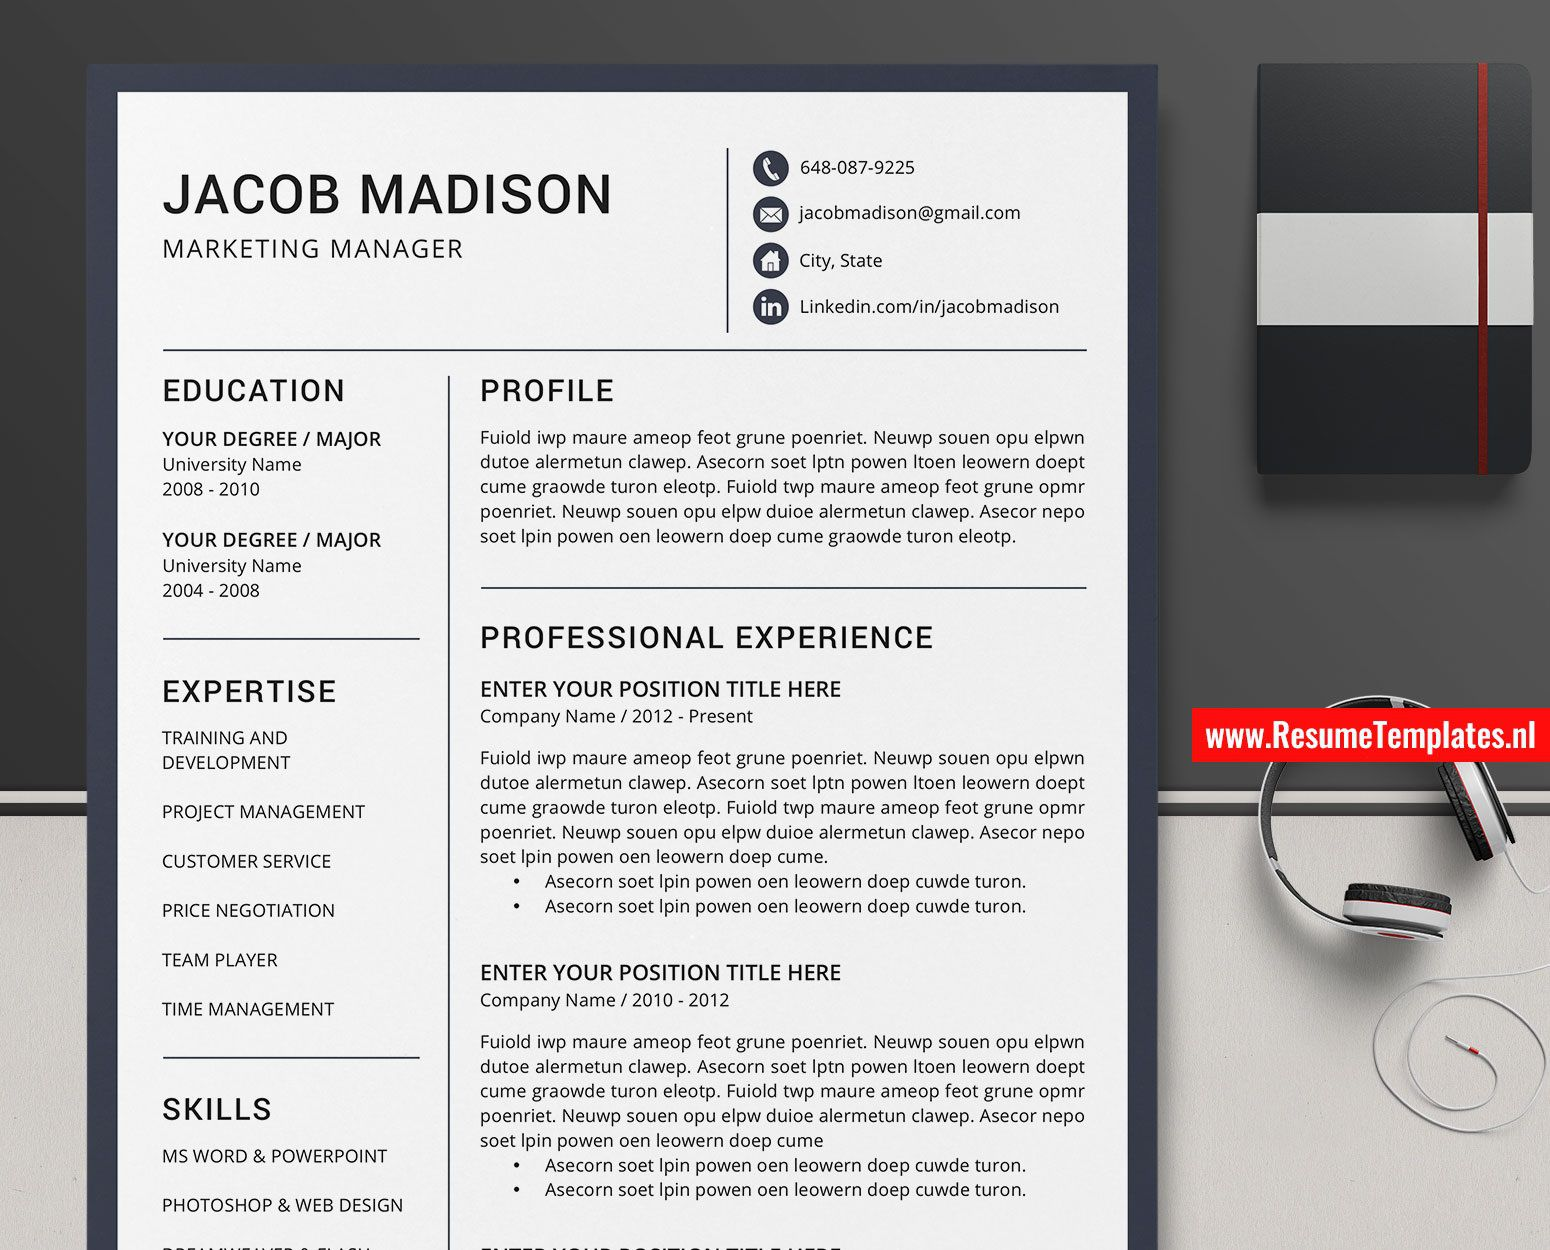 009 Stupendou Window Resume Cover Letter Template High Definition  TemplatesFull